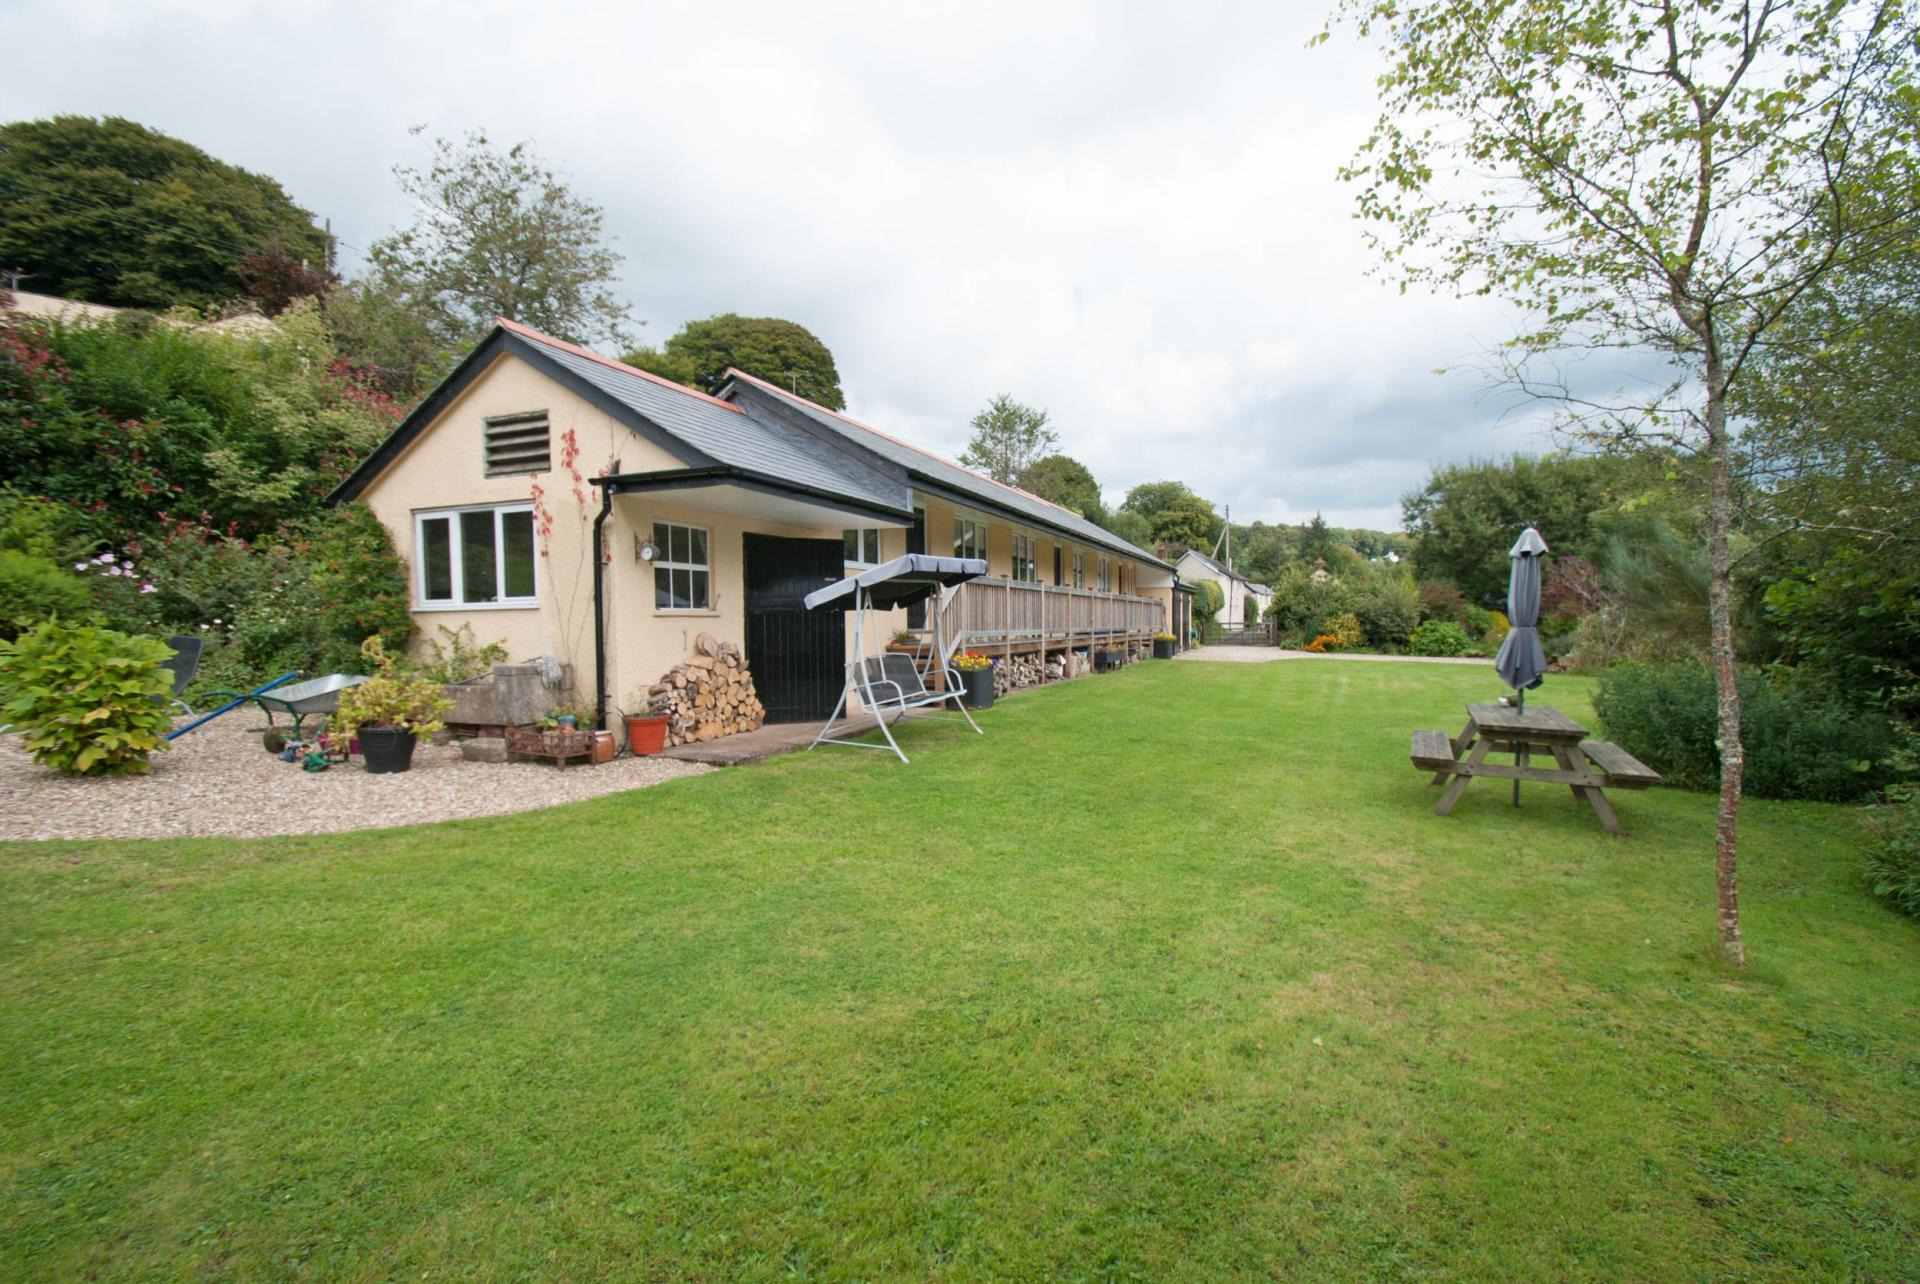 3 Bedroom Detached House For Sale In Minehead